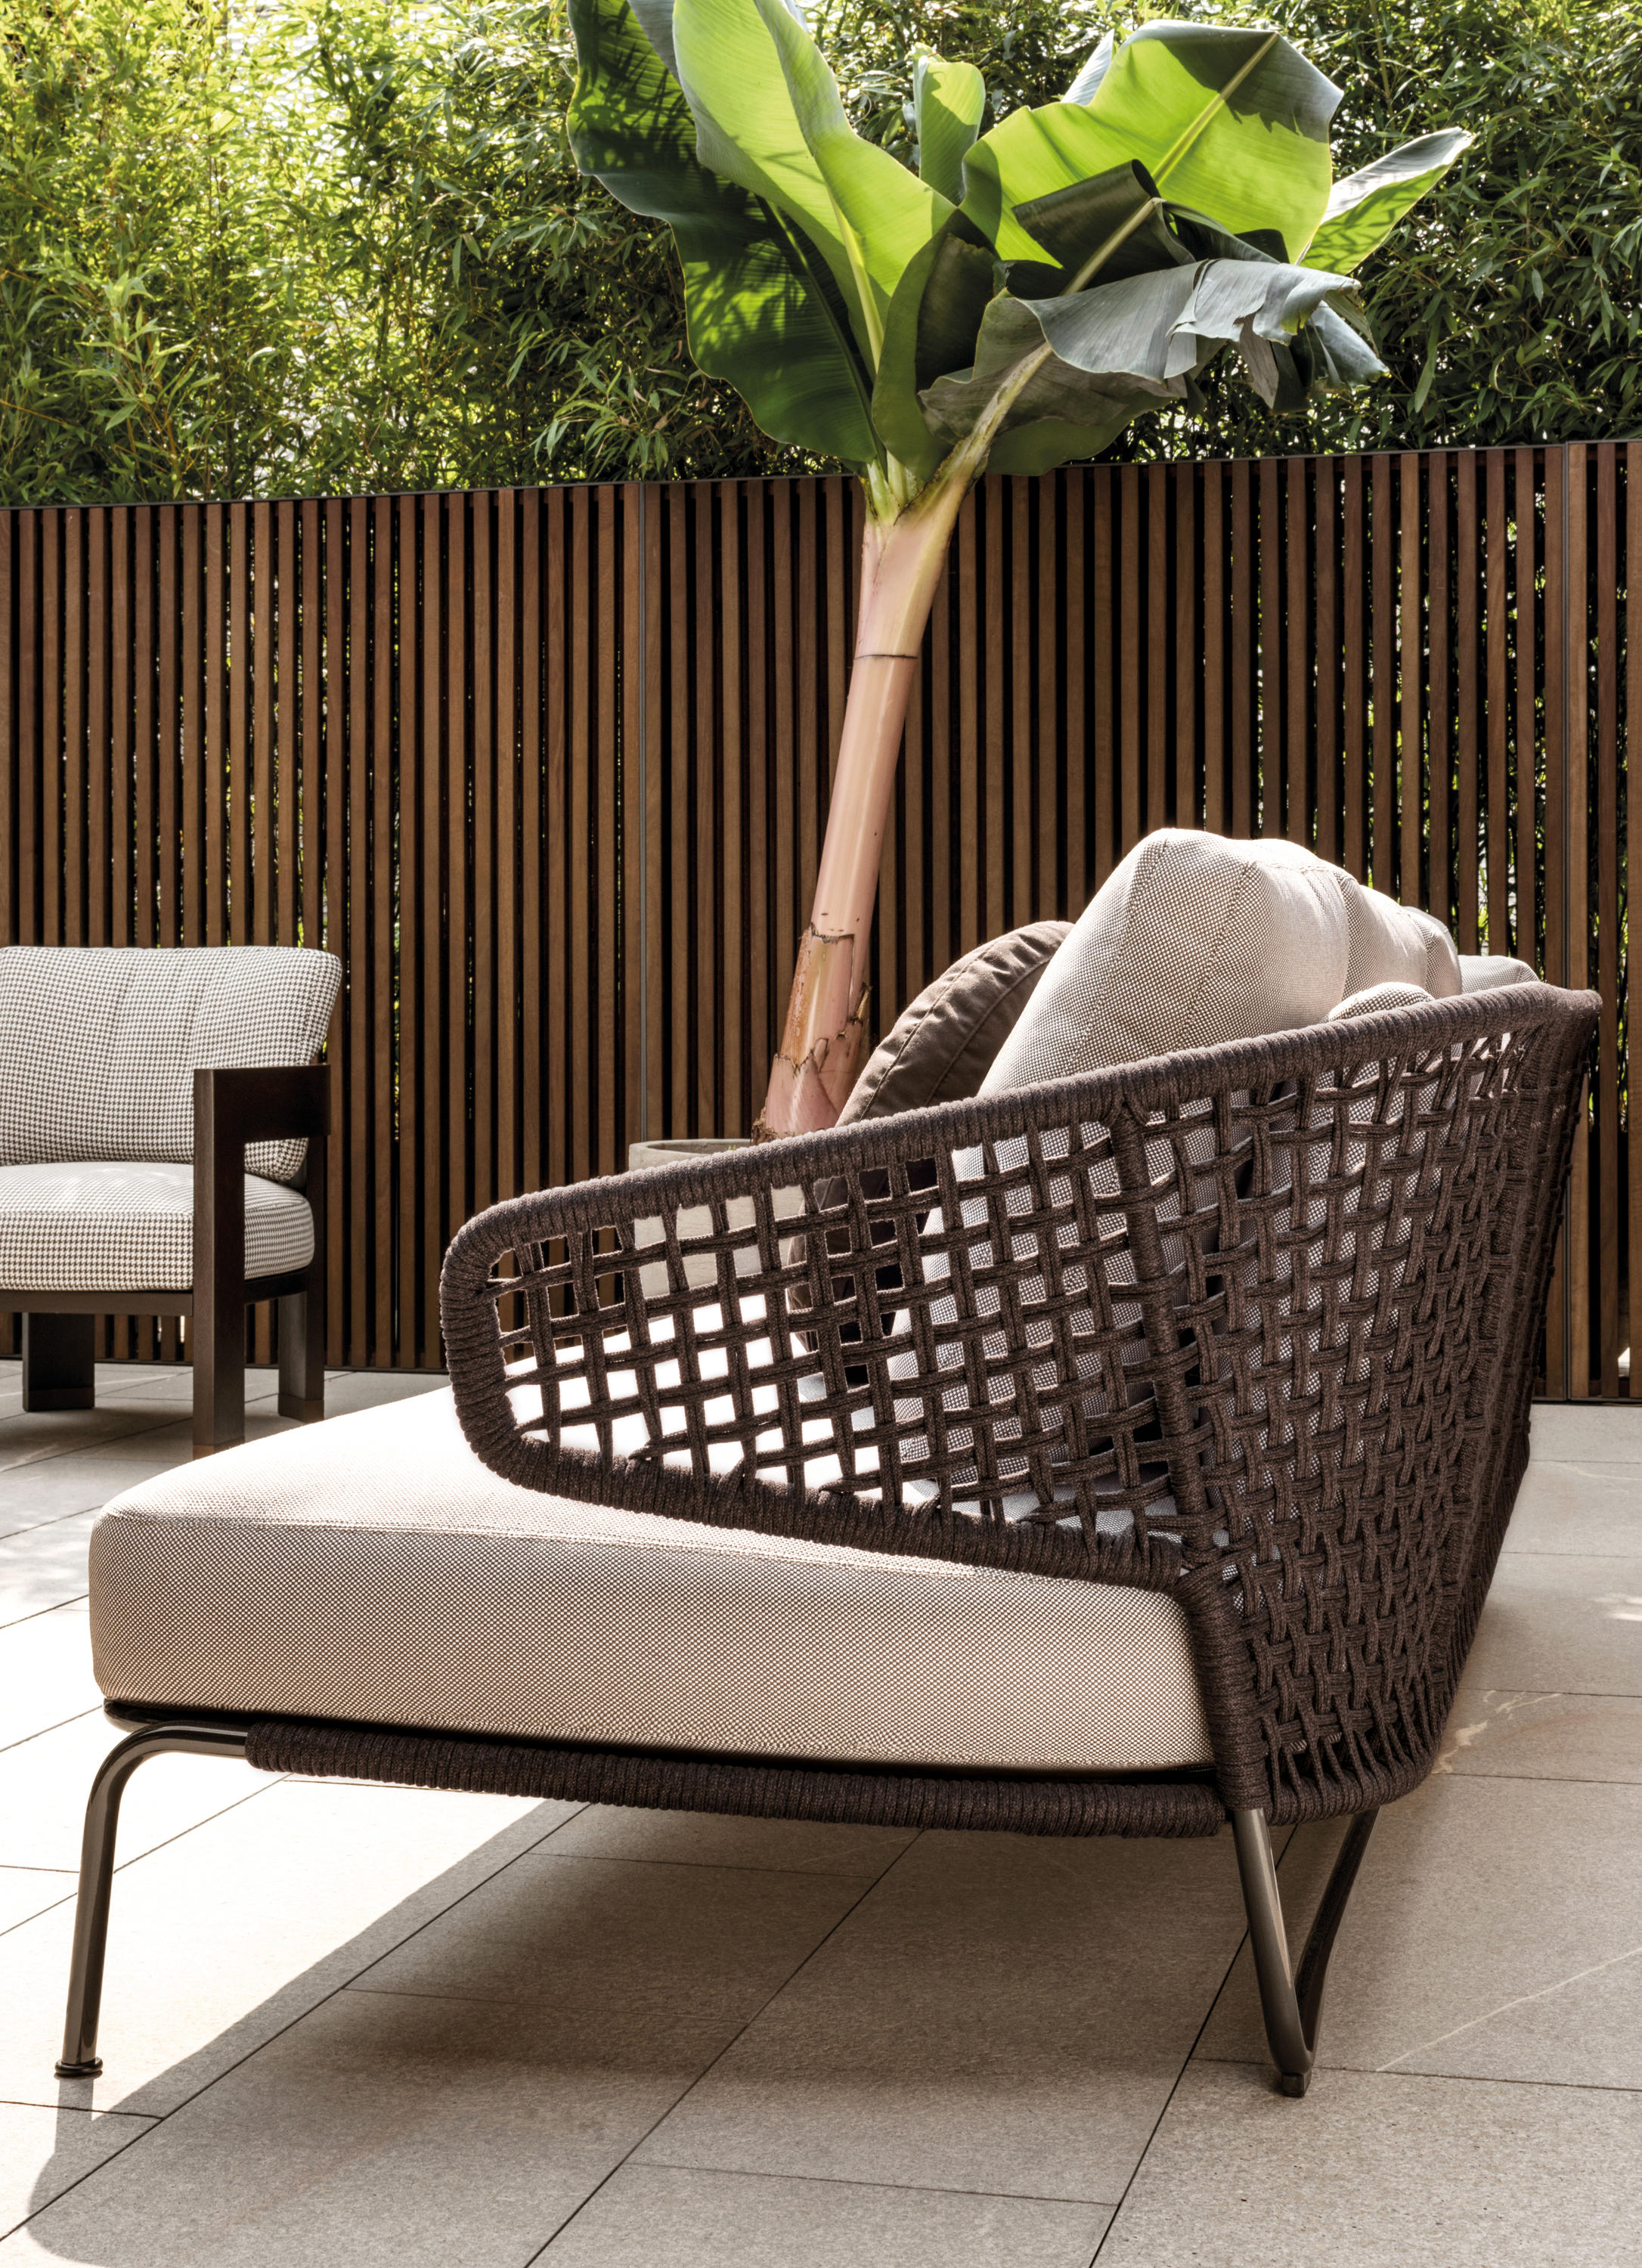 aston cord outdoor garden sofas from minotti architonic. Black Bedroom Furniture Sets. Home Design Ideas